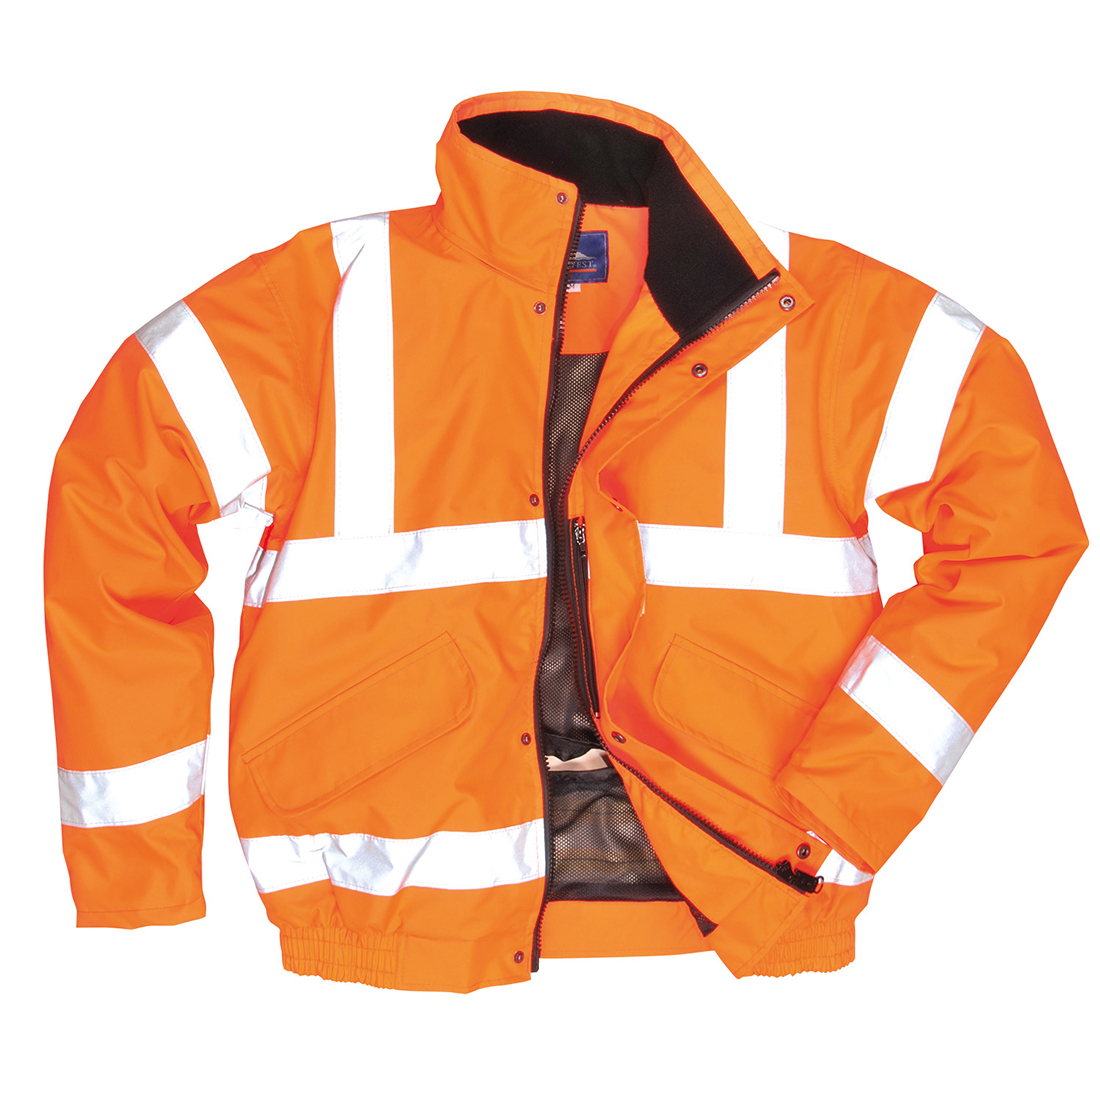 Personal Protective Equipment (PPE) New Portwest Hi Vis Bomber Jacket Water Resistant Fleece Lined Hood Safety S463 Facility Maintenance & Safety